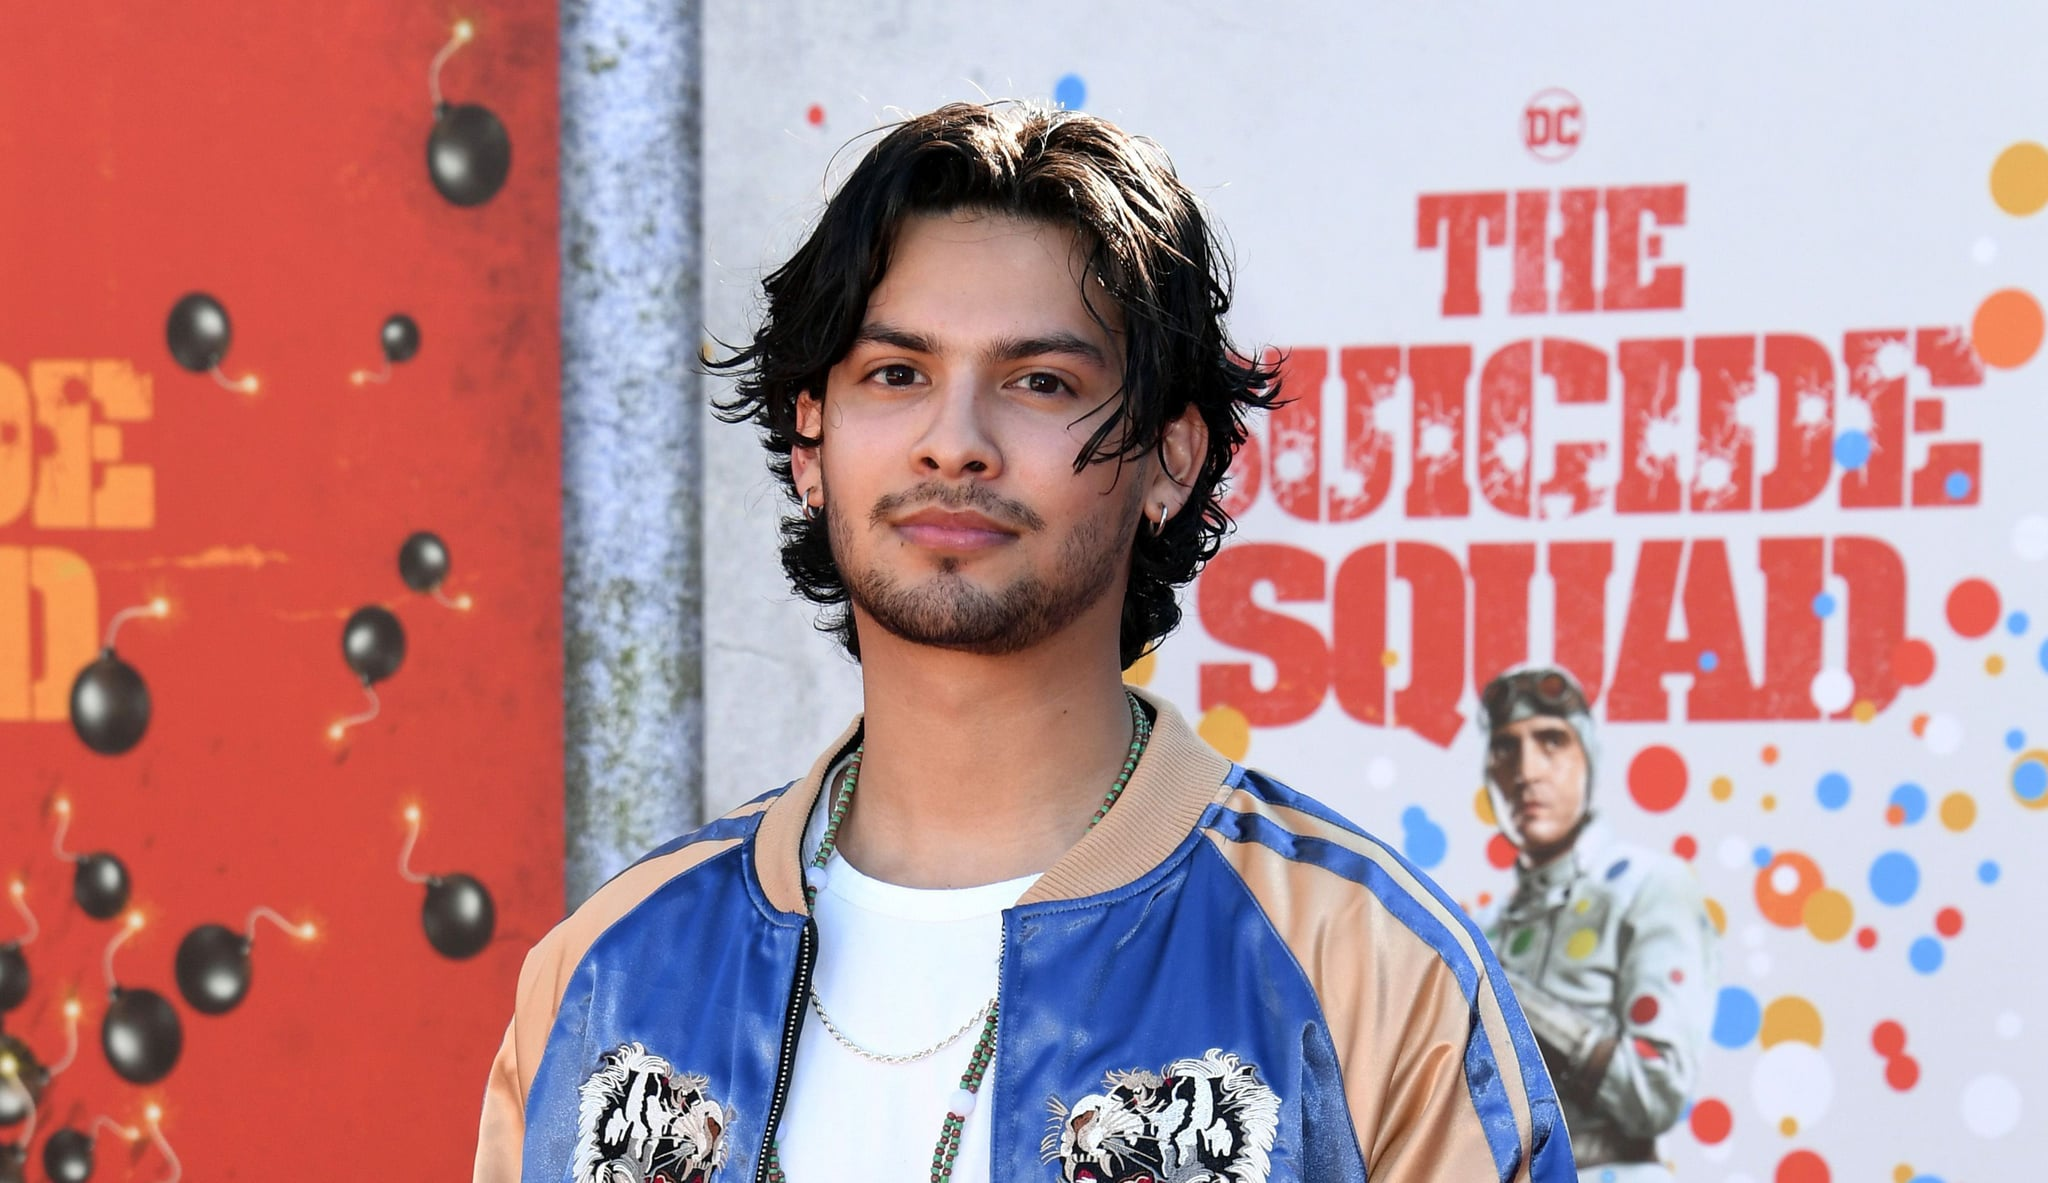 LOS ANGELES, CALIFORNIA - AUGUST 02: Xolo Maridueña attends the Warner Bros. premiere of